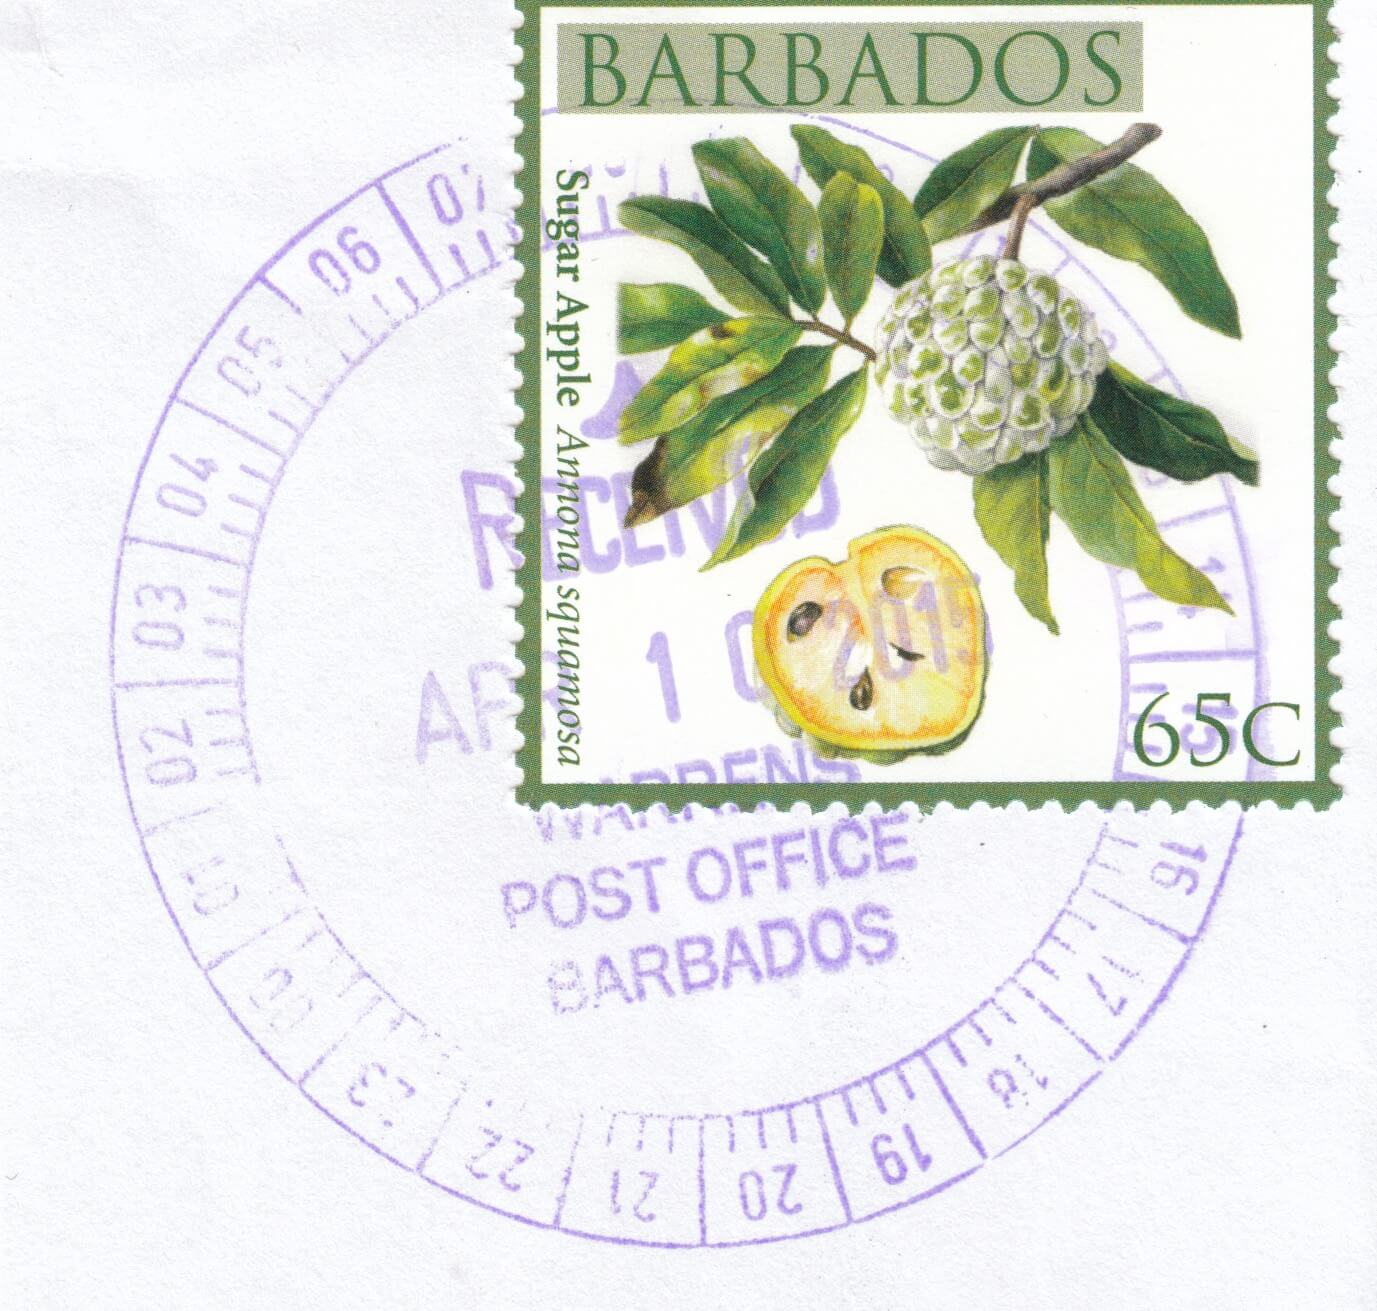 Cancel from Warrens Post Office, Barbados dated 2015